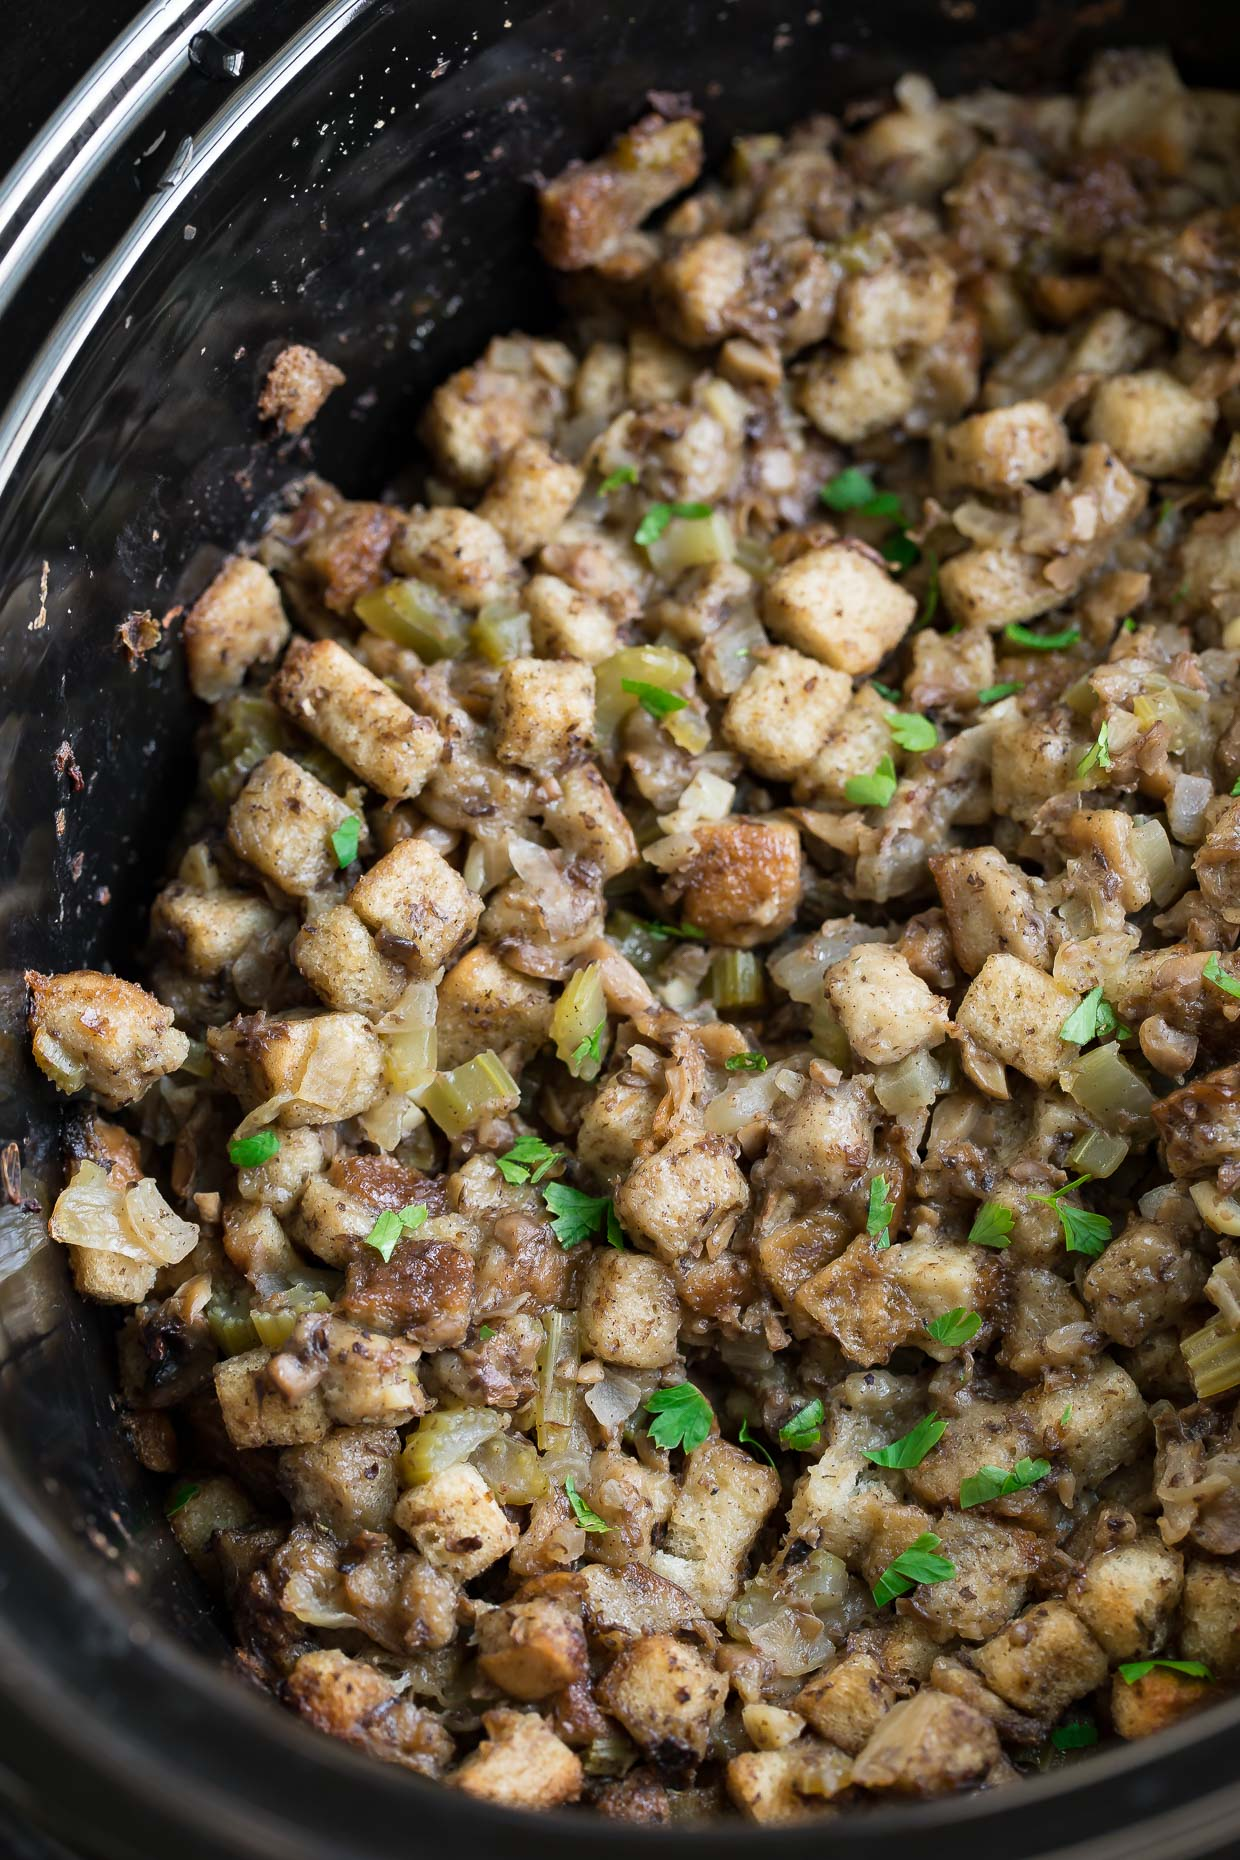 Save precious oven space with this classic Slow Cooker Stuffing recipe! Since converting my mom's Thanksgiving stuffing to the crock-pot I've been OBSESSED with the results. It comes out perfectly tender on the inside and crisp on the outside!